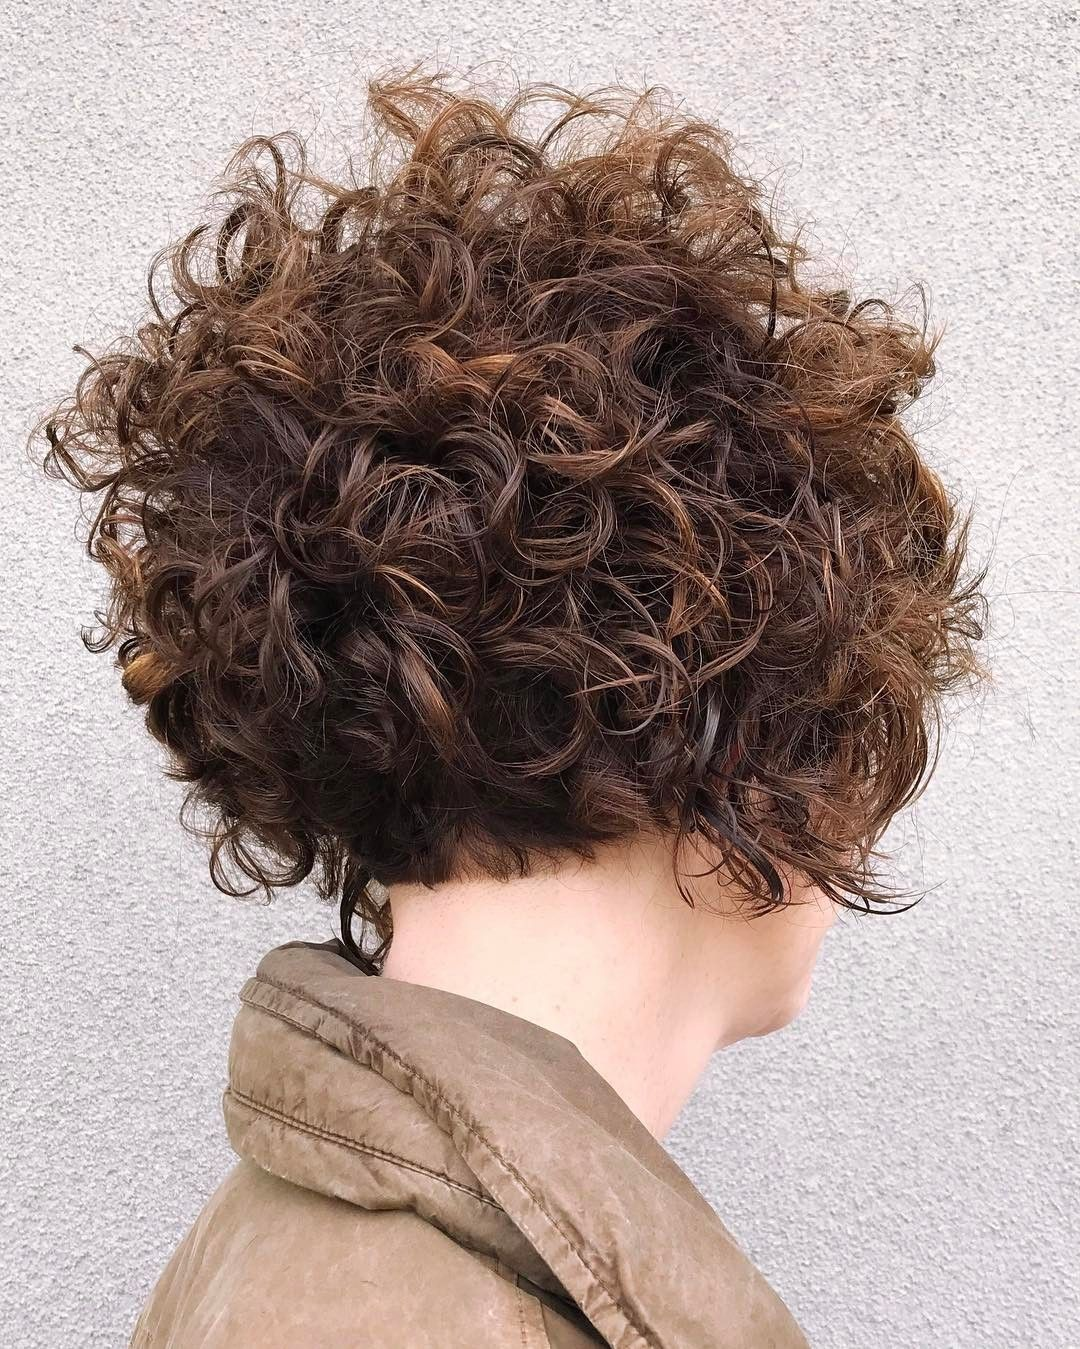 120 Most Inspiring Curly Short Hair Ideas – Hairstyles With Extra Touch of Femininity Check more at http://hairstylezz.com/best-curly-short-hair/